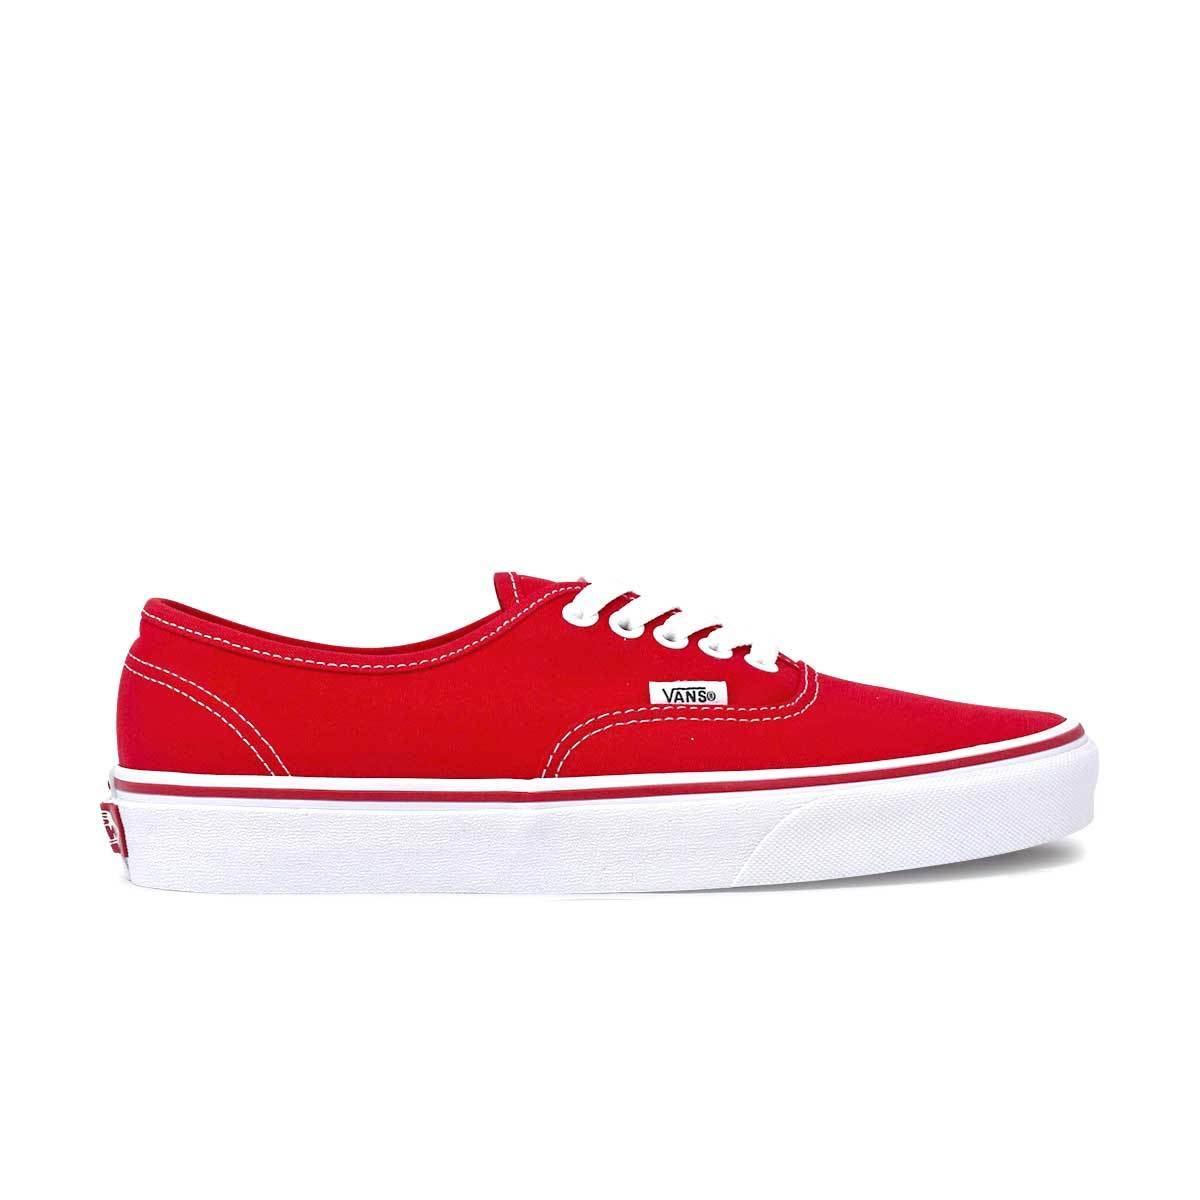 Authentic Red/White